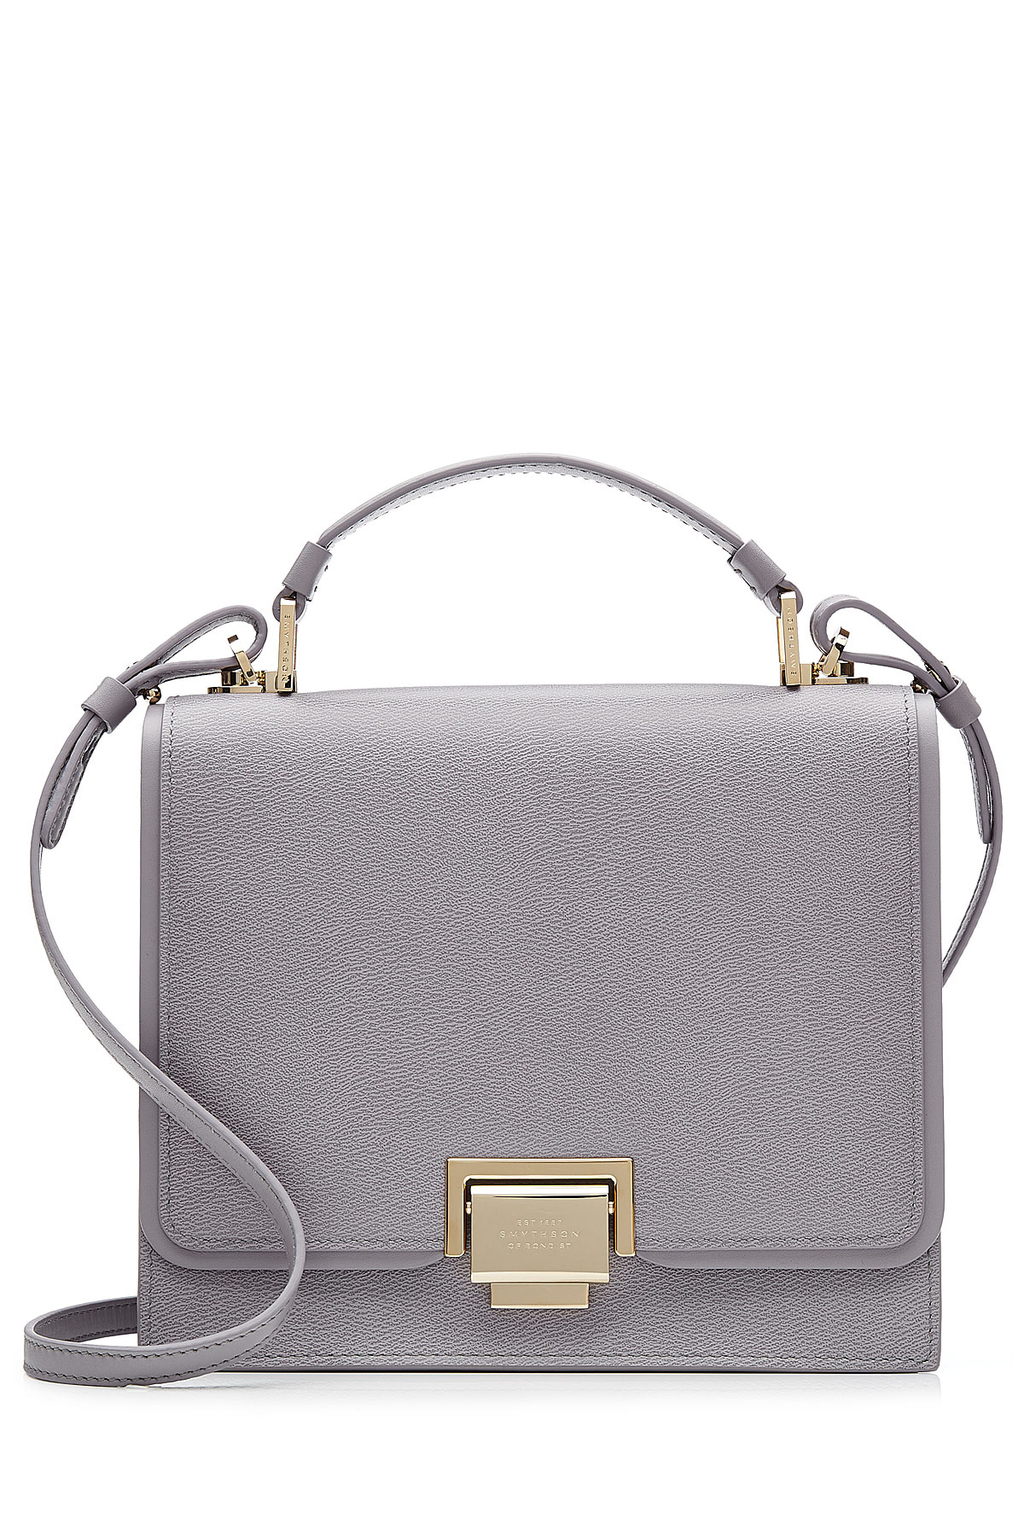 Leather Mini Crossbody Bag Mauve - predominant colour: mid grey; occasions: casual; type of pattern: standard; style: messenger; length: across body/long; size: small; material: leather; pattern: plain; finish: plain; wardrobe: basic; season: a/w 2016